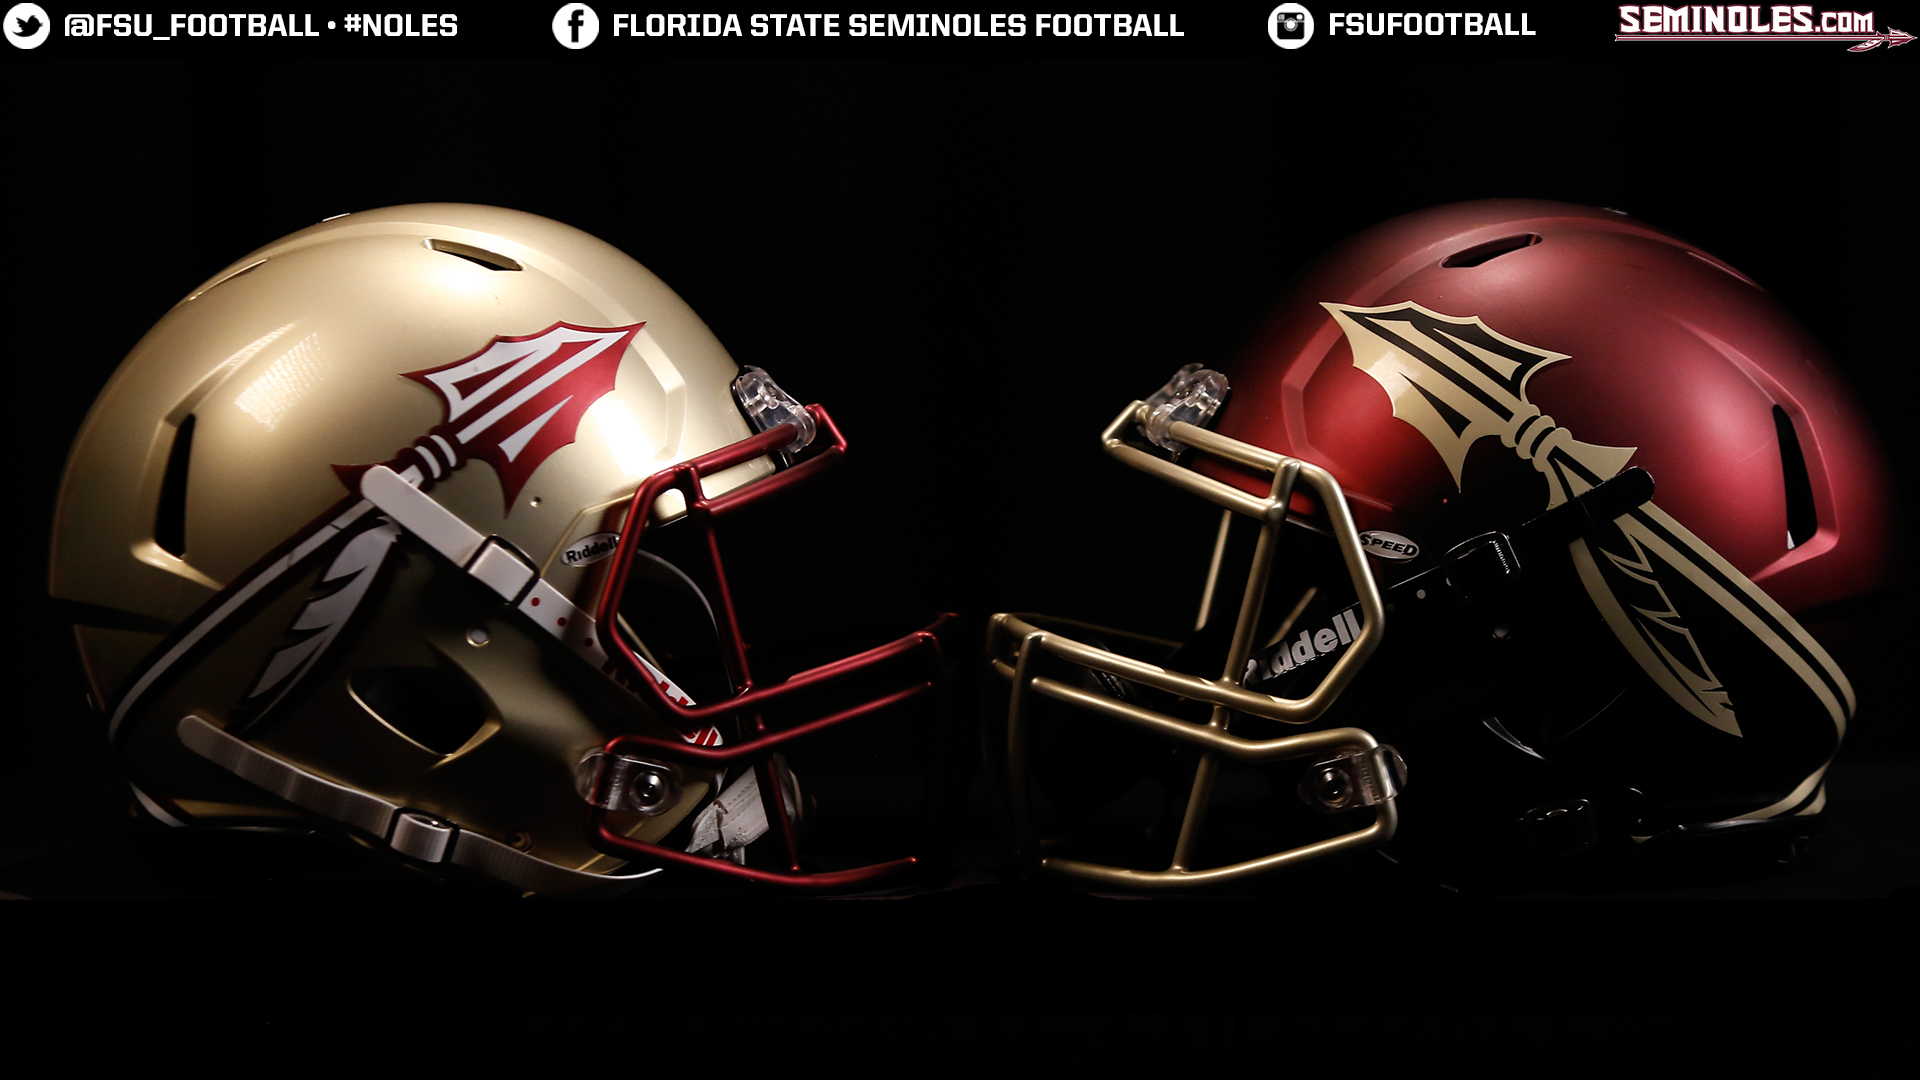 Fsu Football Desktop Wallpaper